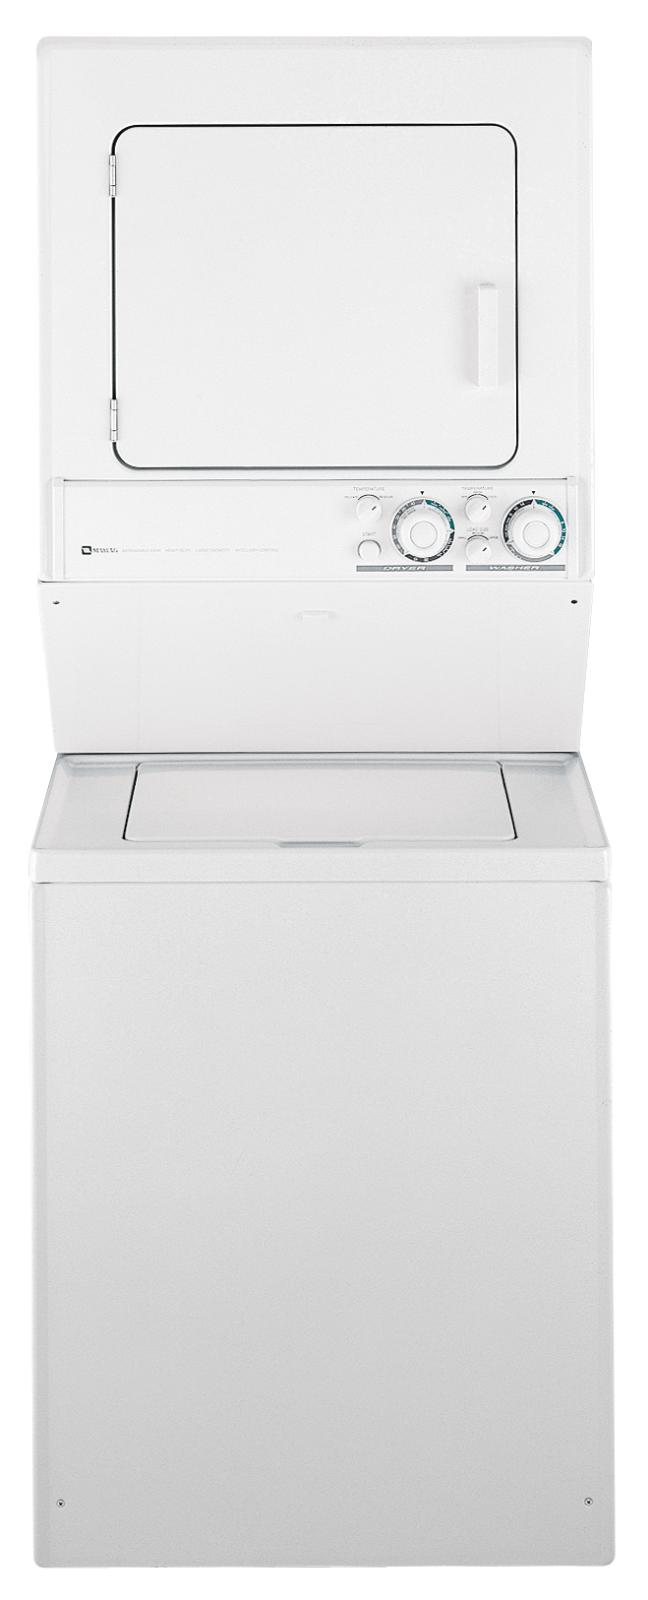 recommended white stackable washer and dryer for smart laundry furniture ideas